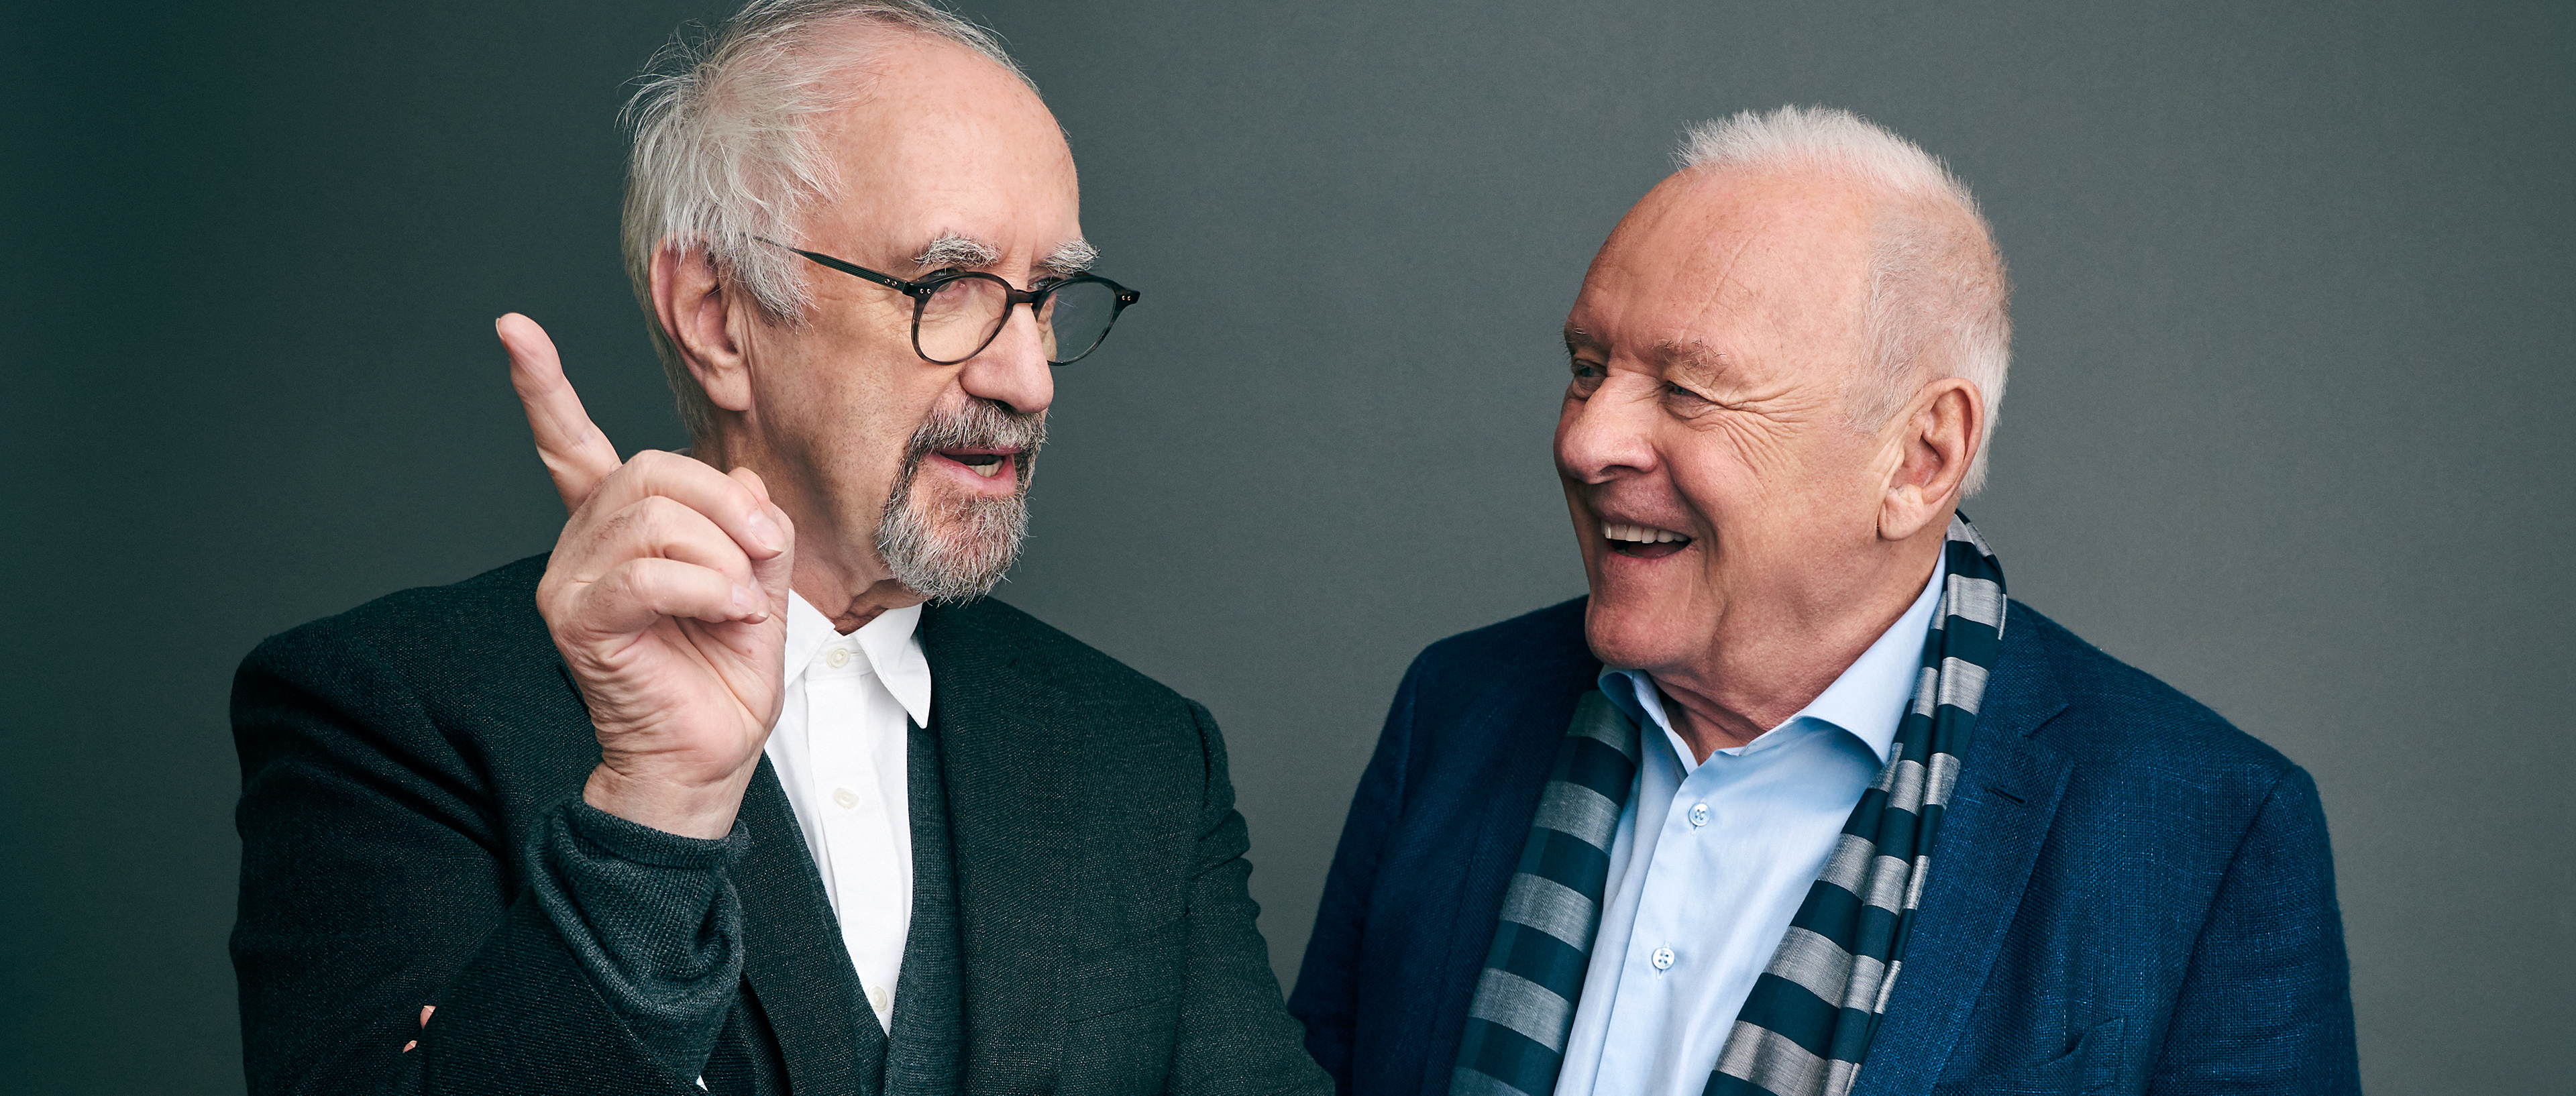 Jonathan Pryce Anthony Hopkins On The Two Popes Q A Deadline